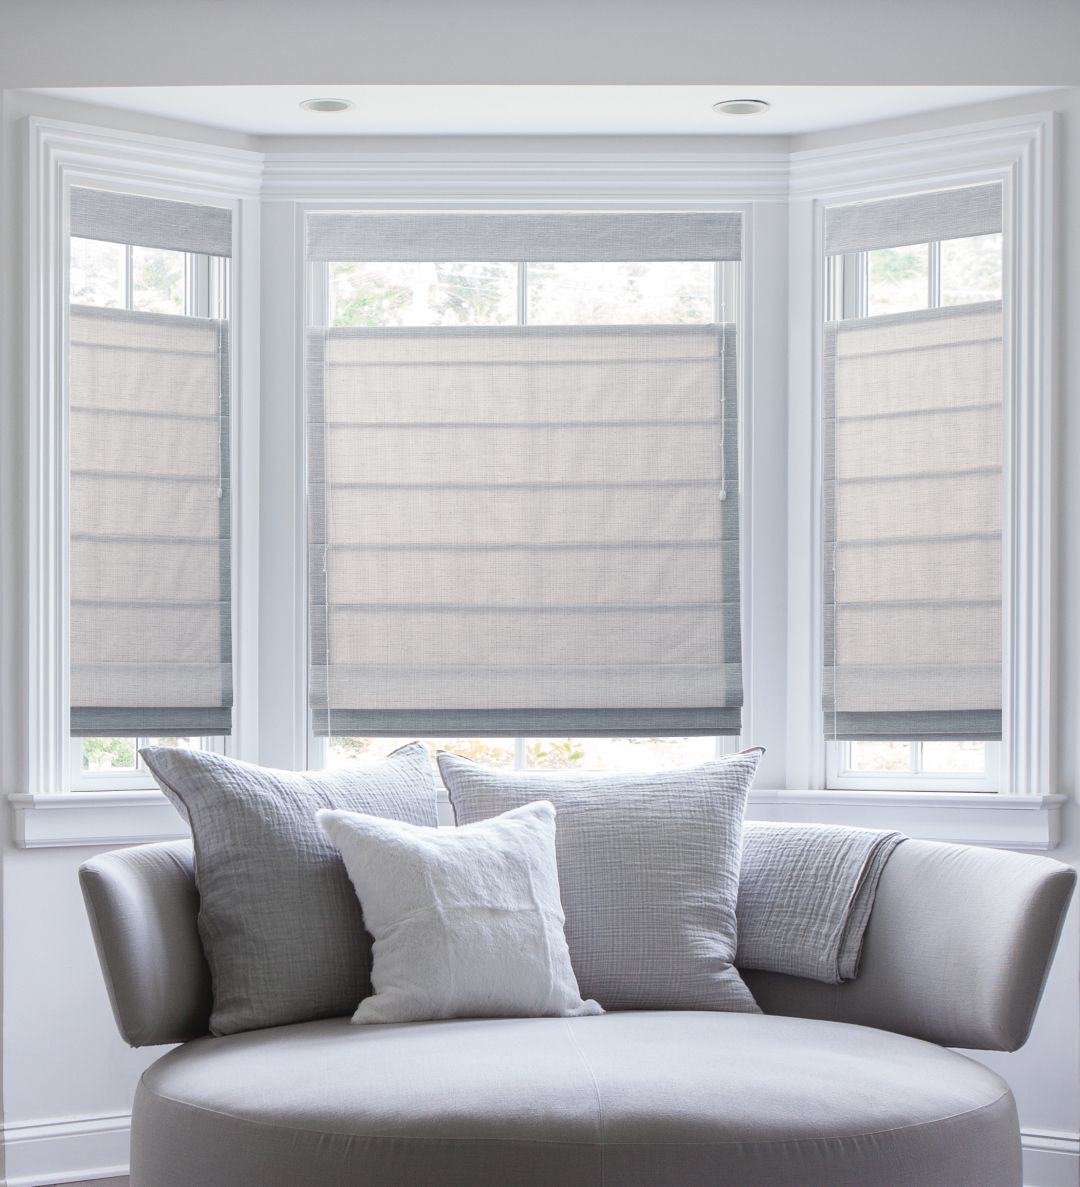 Top down bottom up plain classic pleated roman shades in brie top down bottom up plain classic pleated roman shades in brie solutioingenieria Images